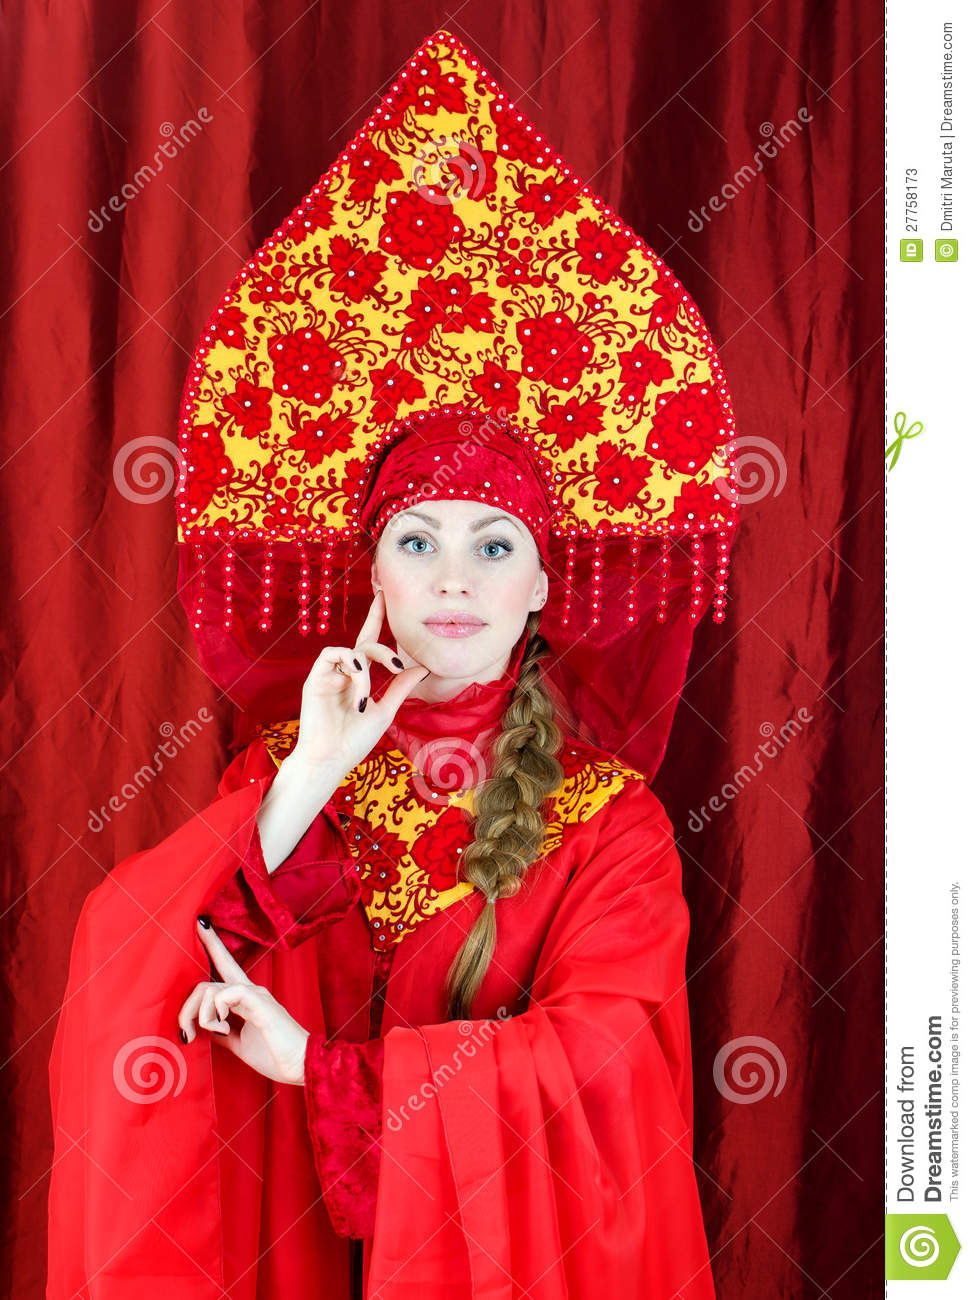 Russian girls in traditional russian clothing